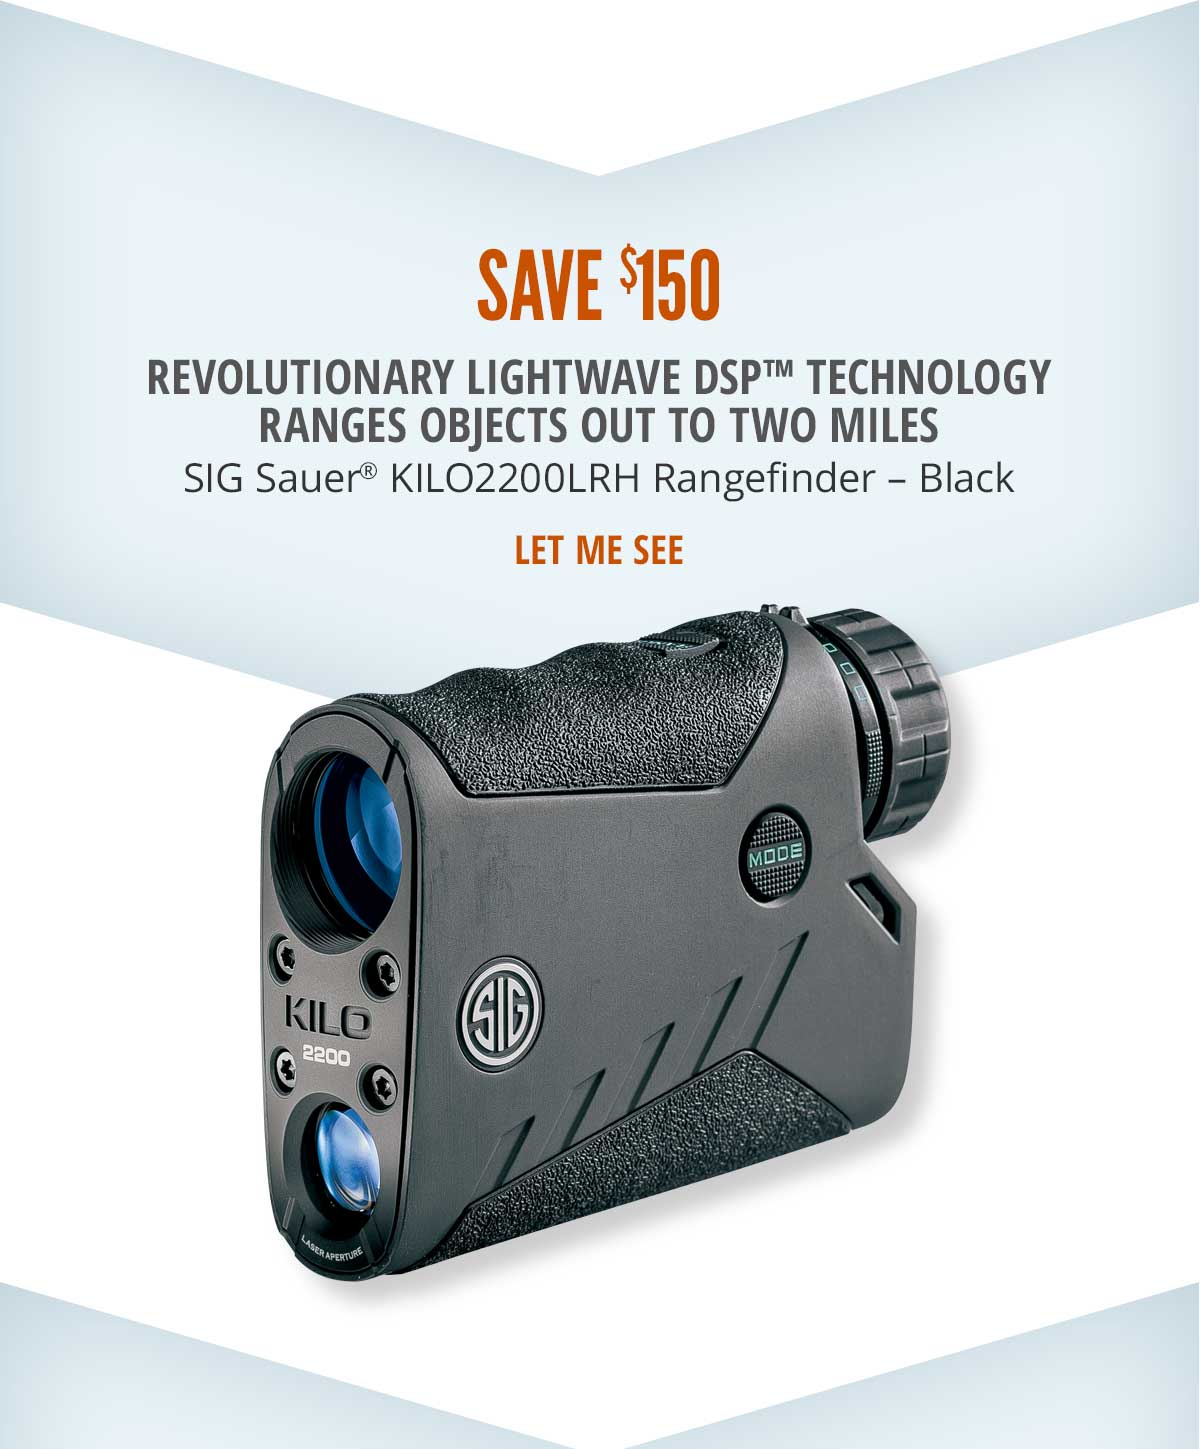 Save $150 on SIG Sauer KILO2200LRH Rangefinder - Black